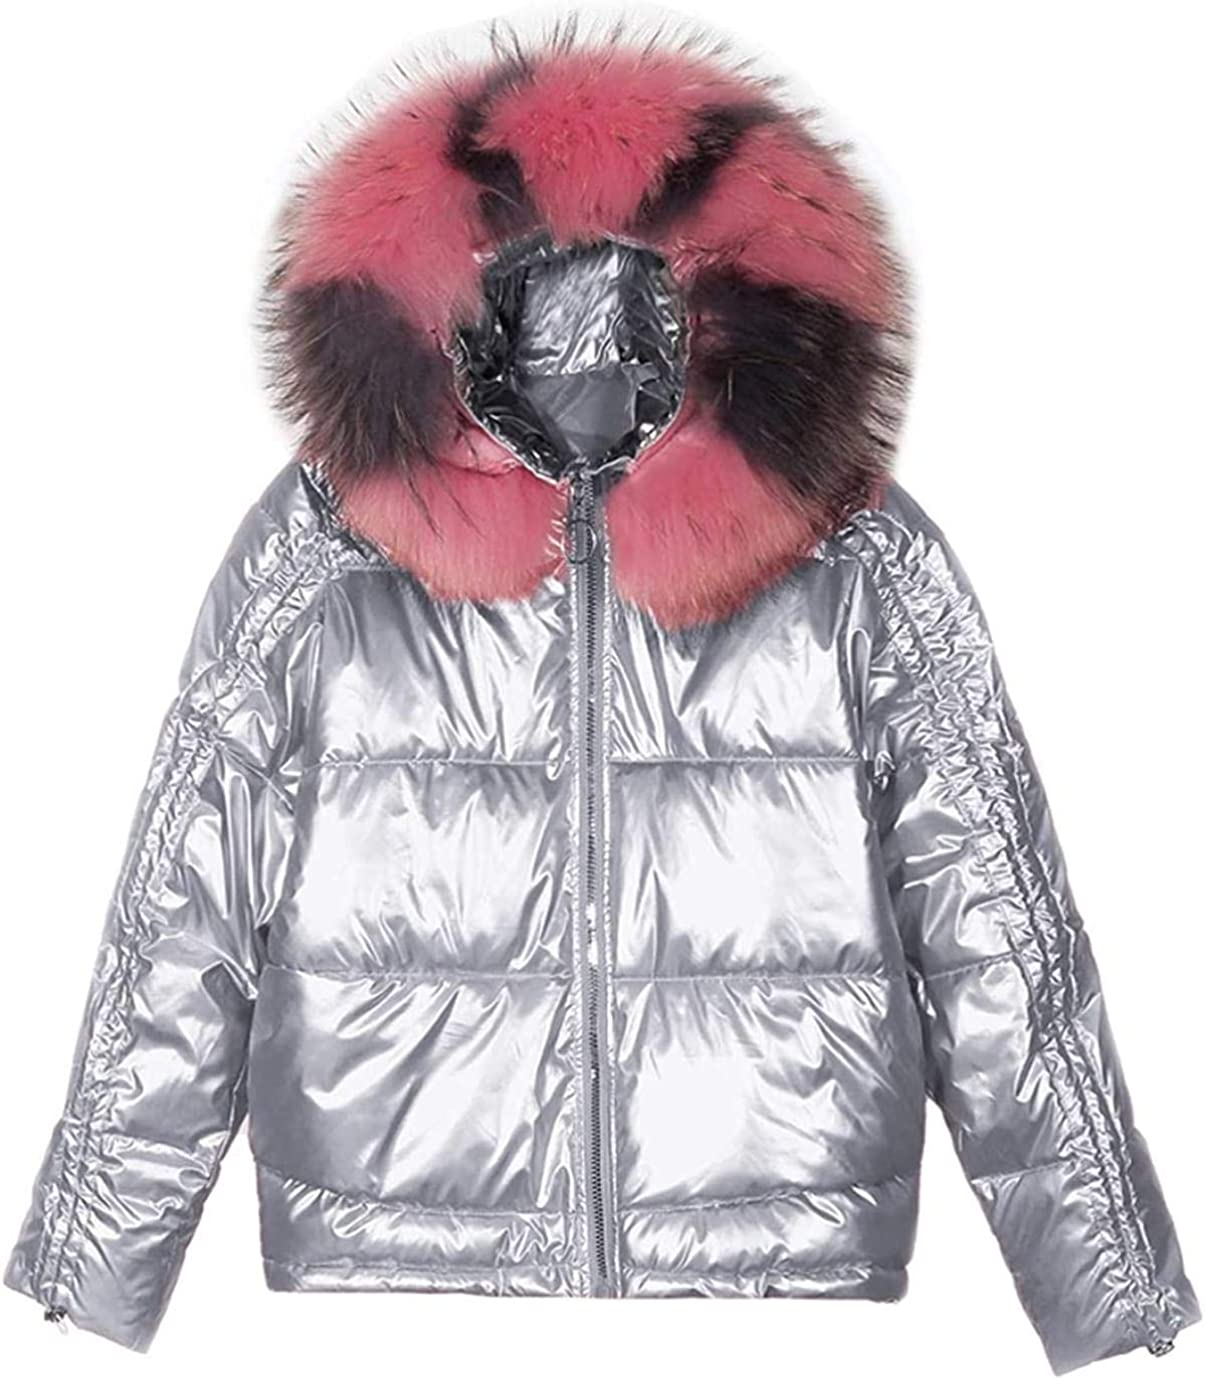 Women's Winter Faux Fur Hooded Relaxed Fit Shiny Metallic Padded Short Parka Jacket